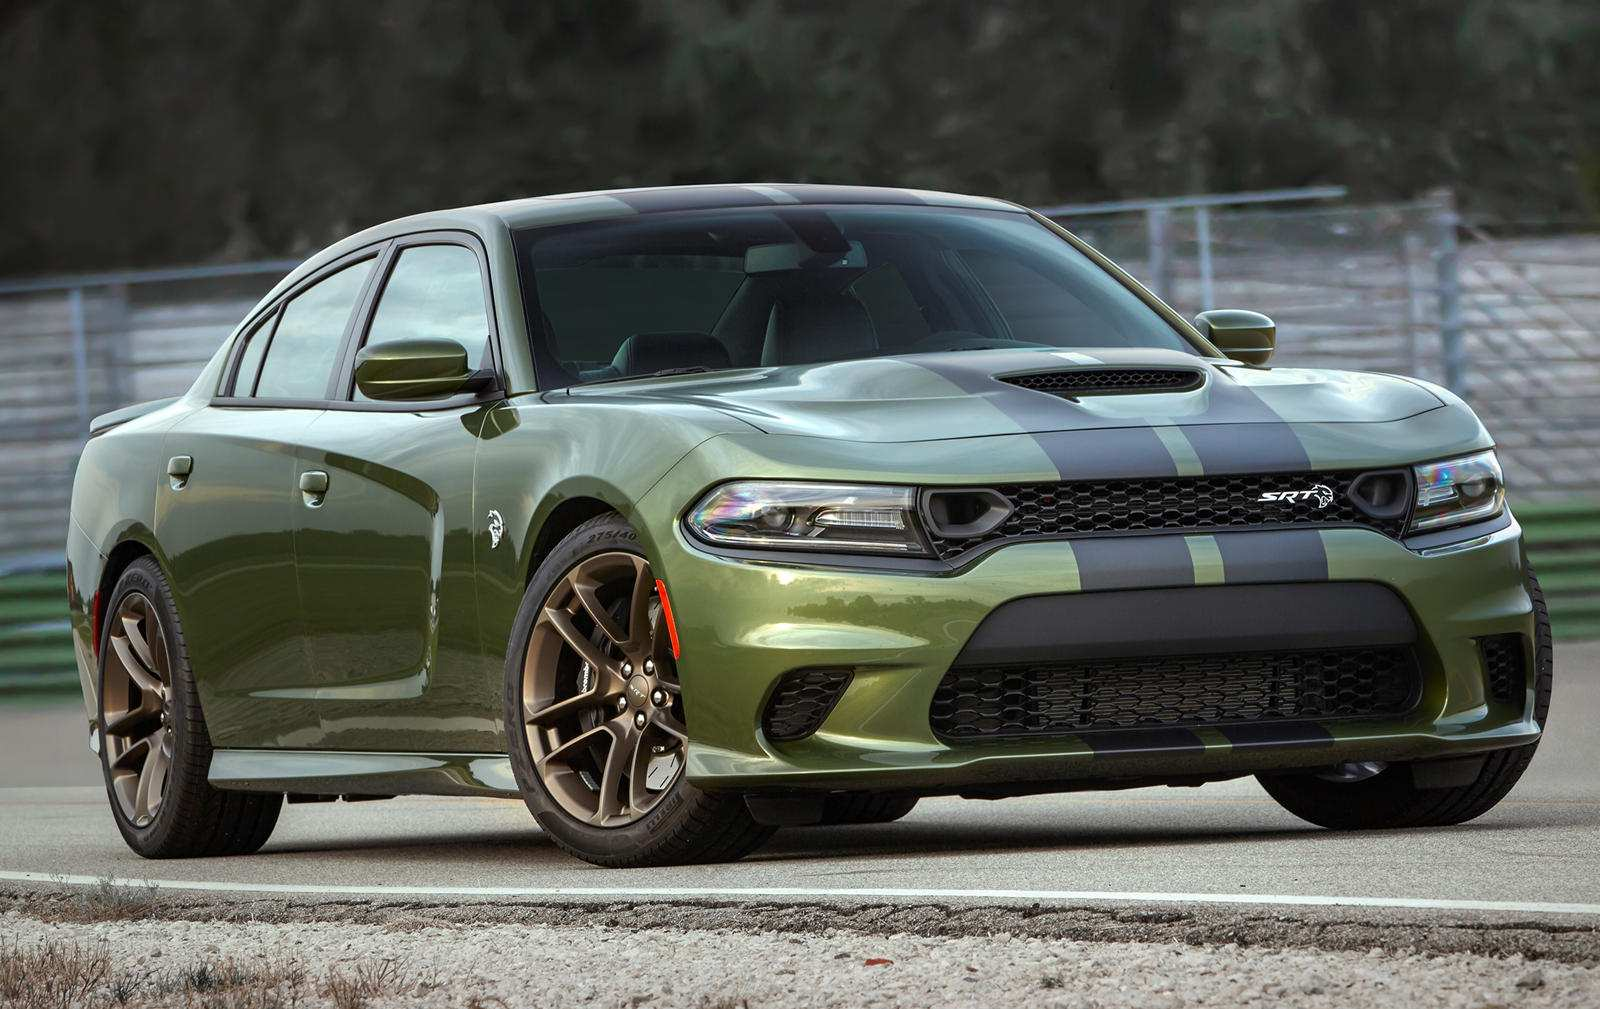 85 All New 2020 Dodge Charger Srt 8 Reviews